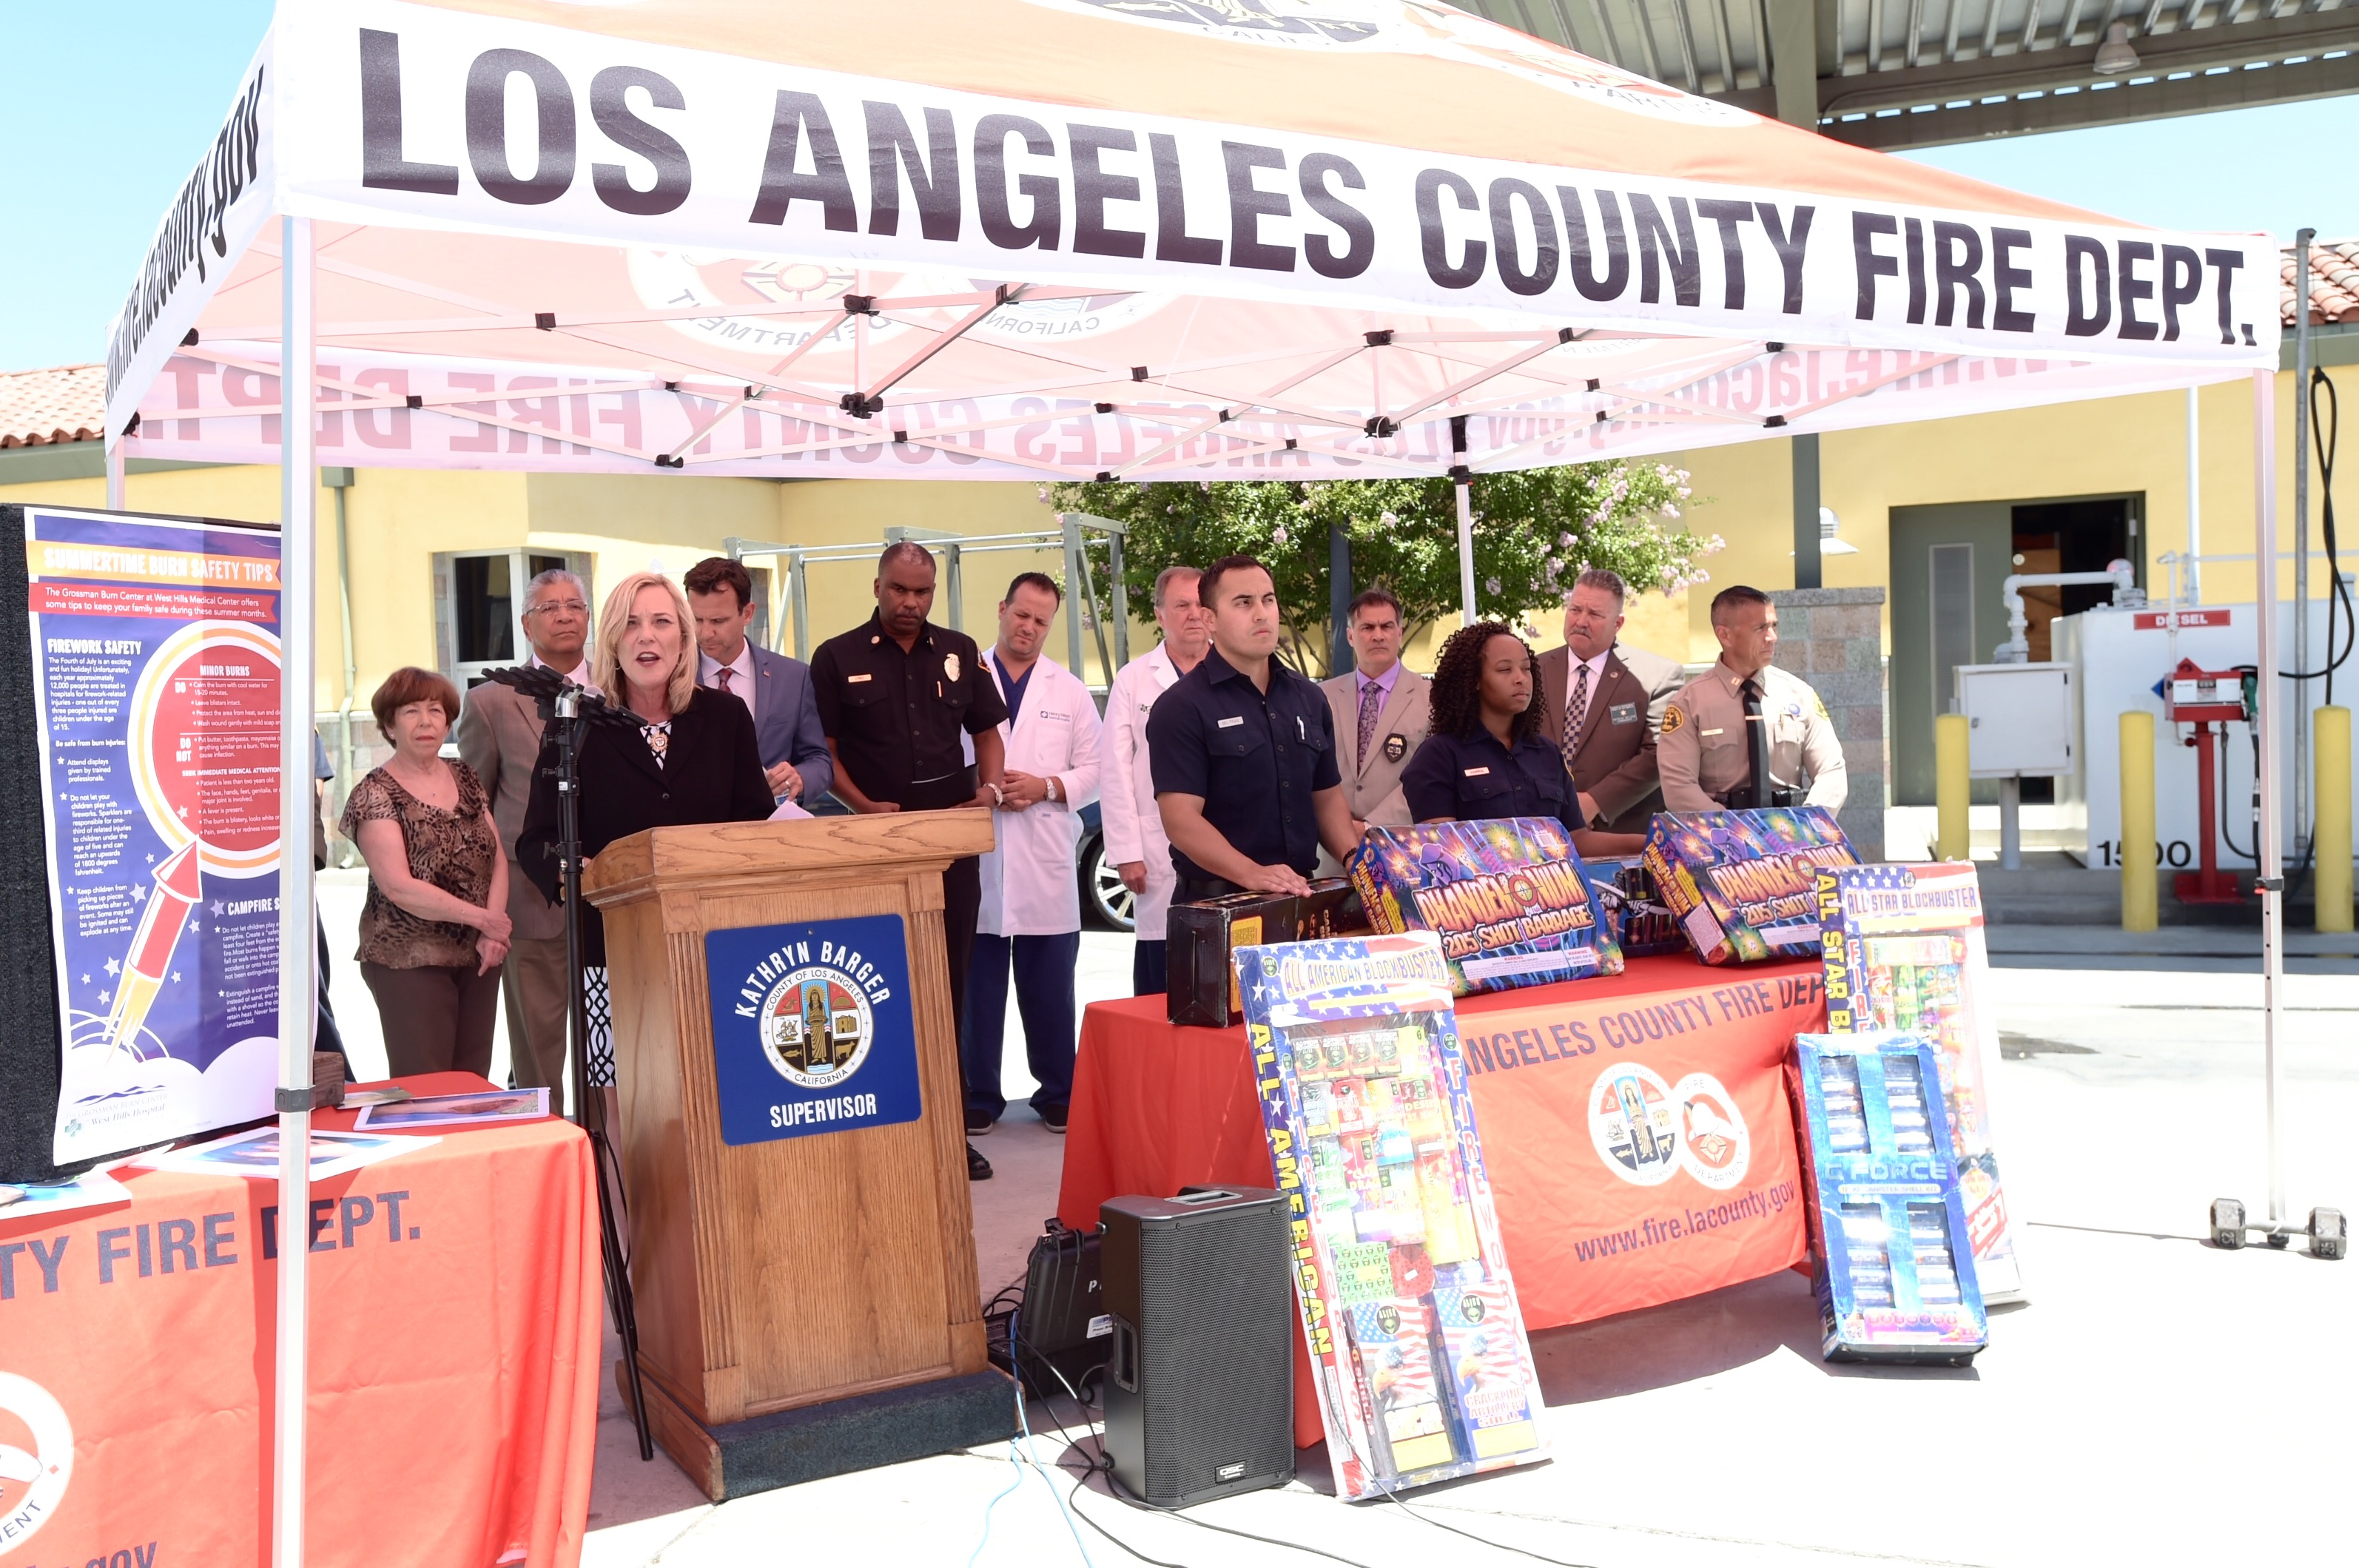 Supervisor Kathryn Barger Fireworks Are Illegal In Los Angeles County